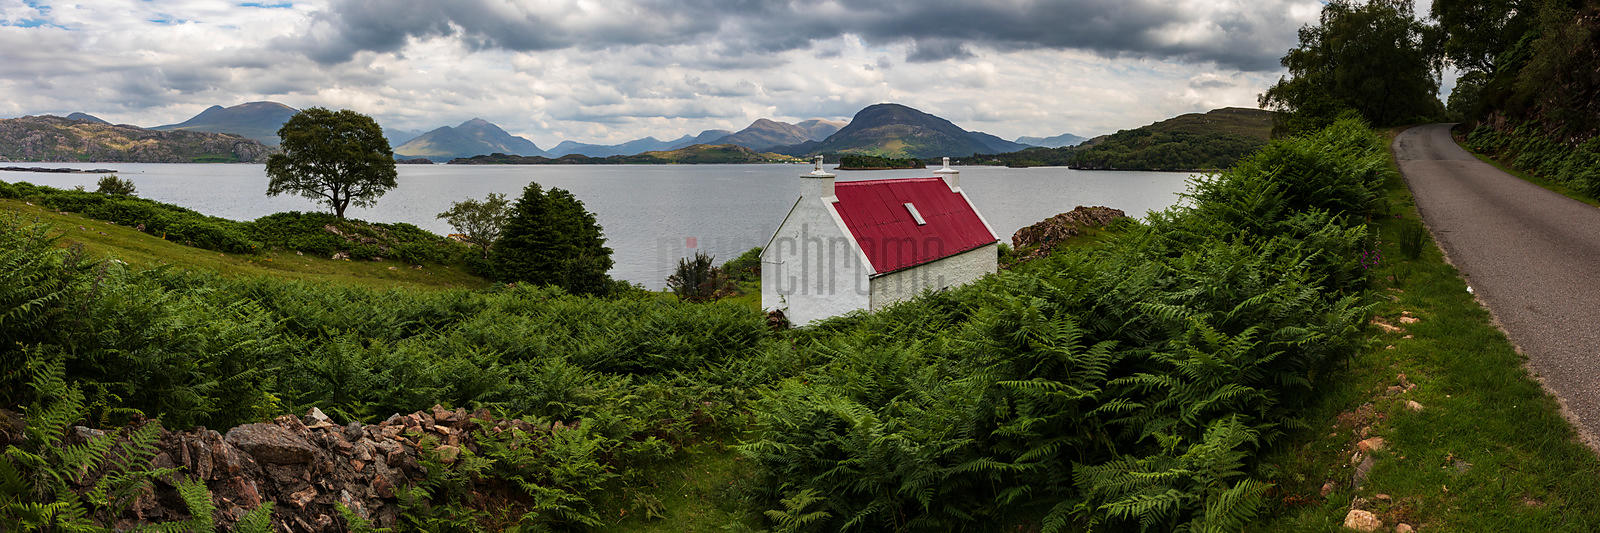 Red-Roofed Cottage  Looking across Upper Loch Torridon